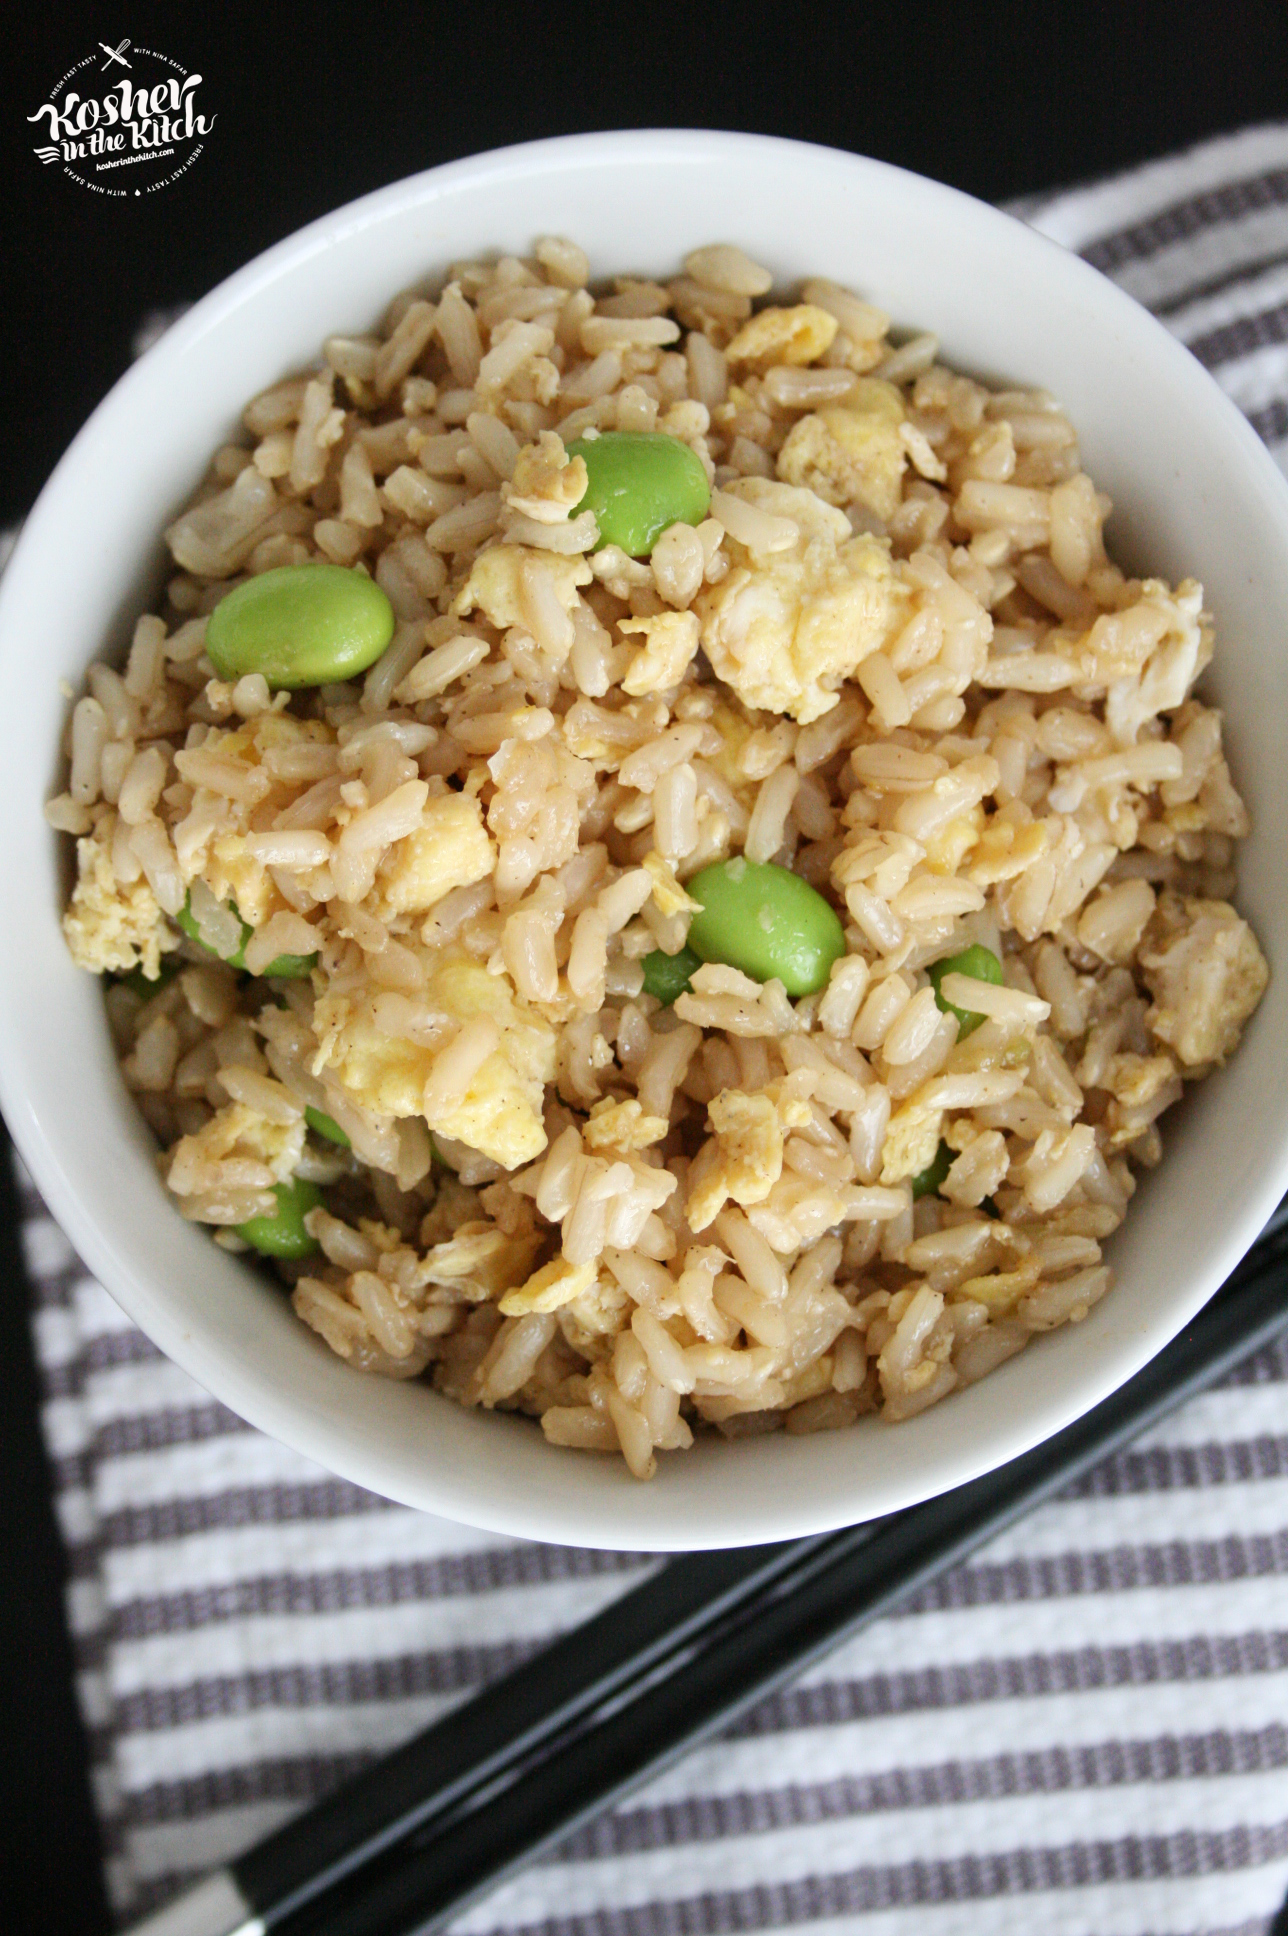 Fried Brown Rice with Edamame - Kosher In The Kitch!